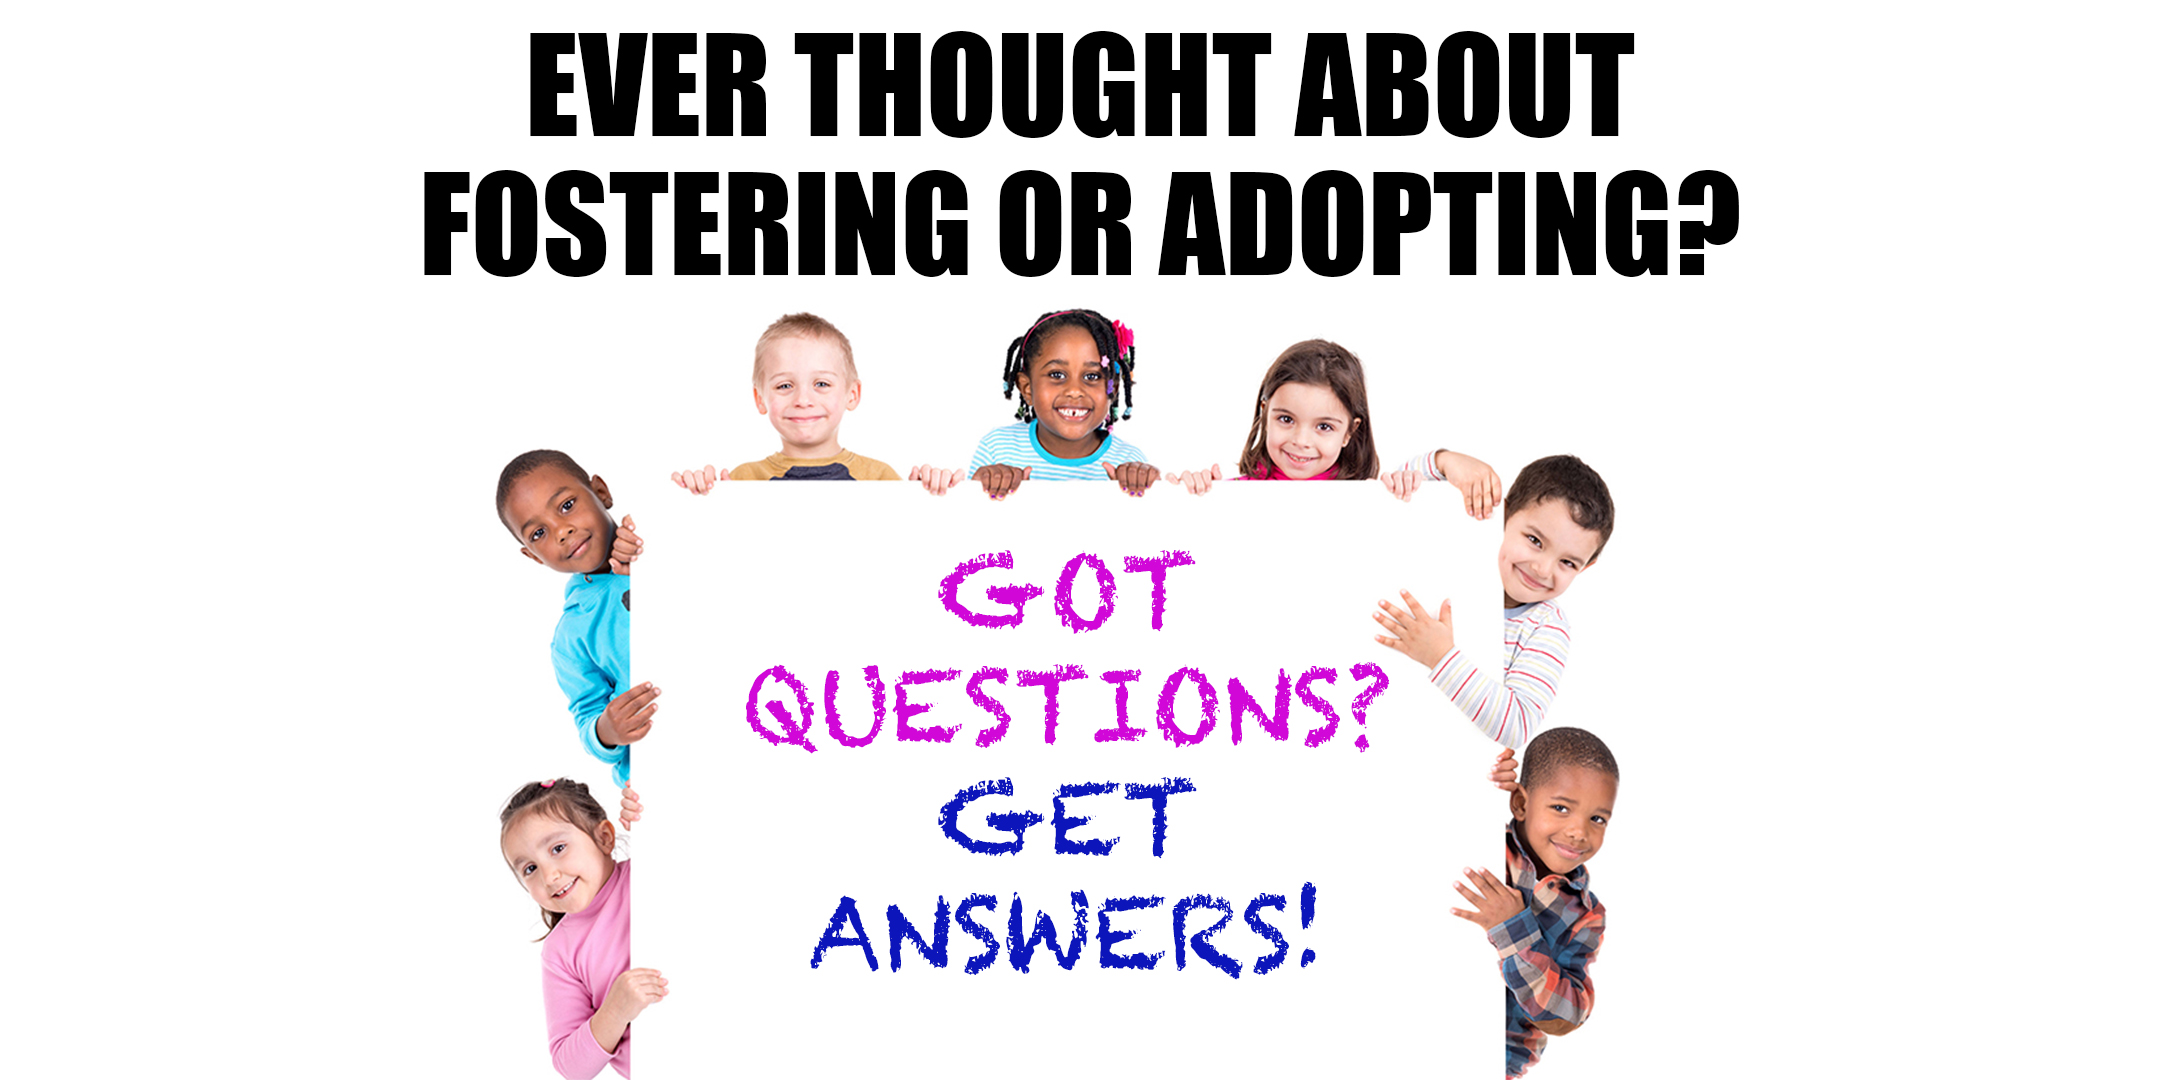 Ever thought about fostering or adopting?